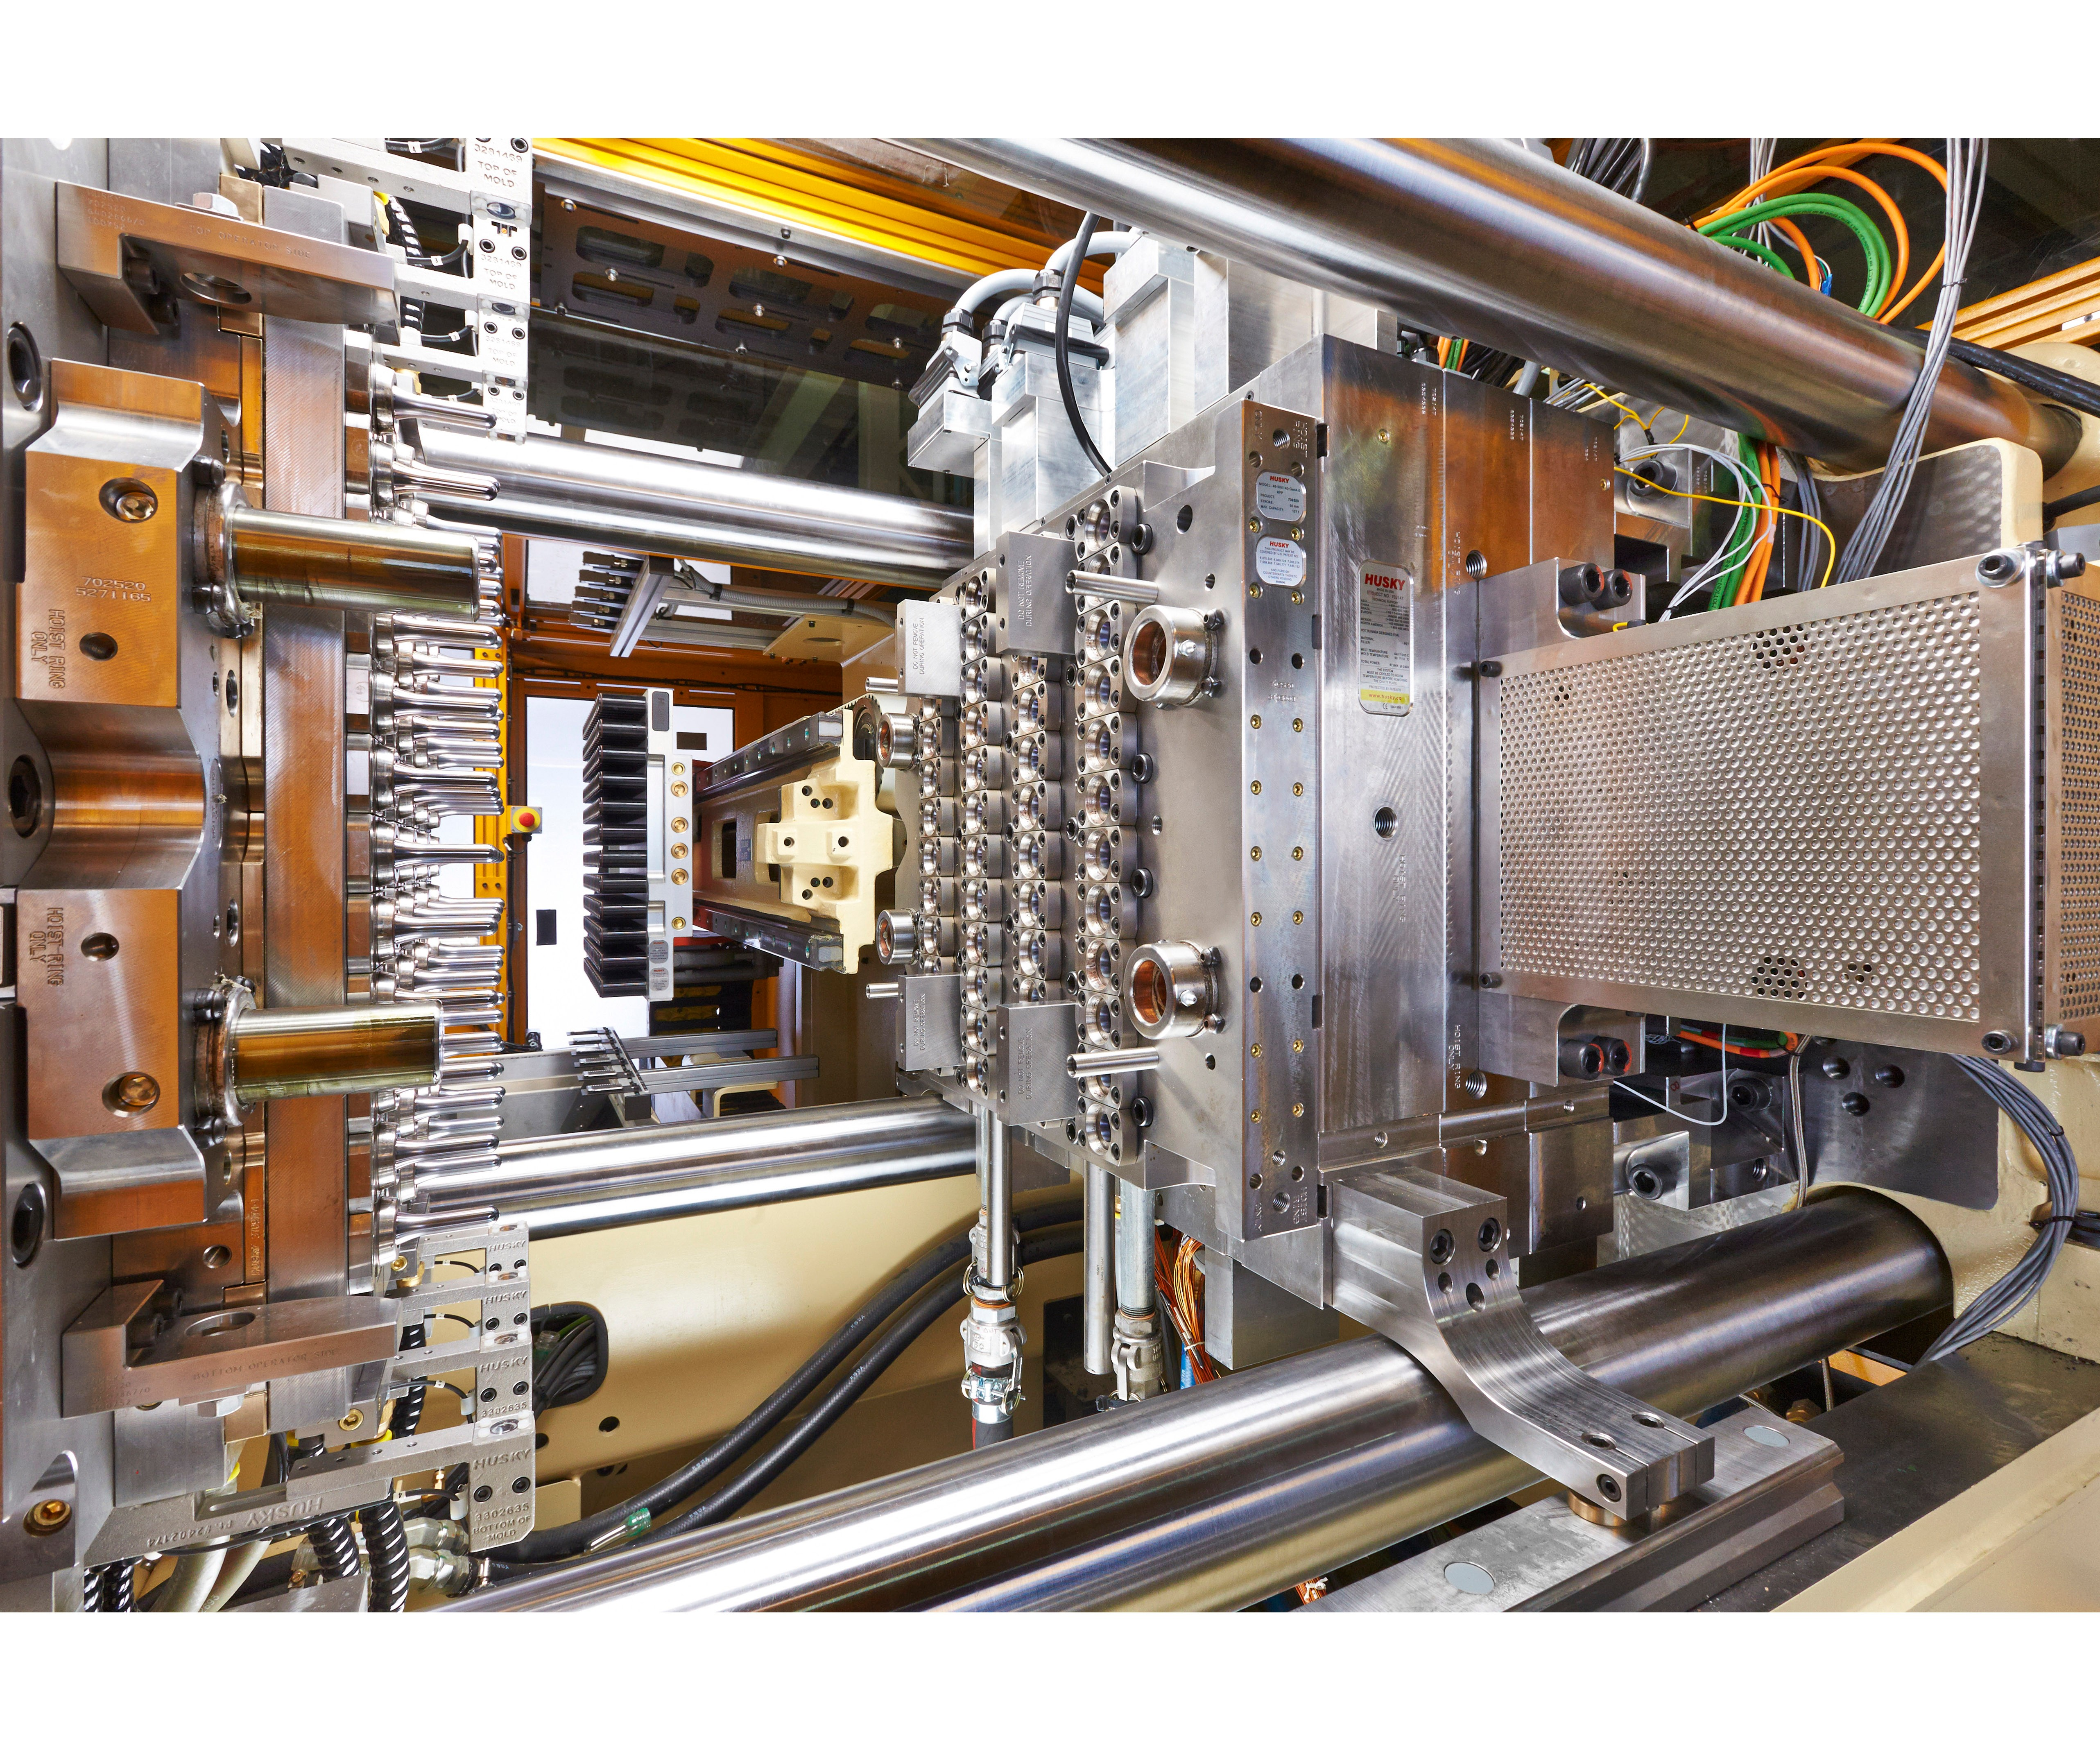 Husky shows co-injected barrier PET preforms molded on his HyPET injection molding press